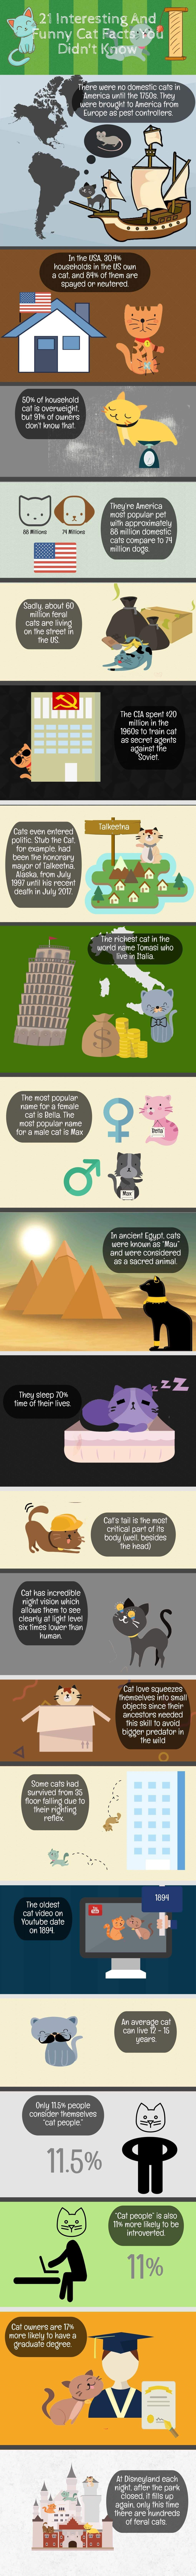 21 Interesting and Funny Cat Facts You Didn't Know #infographic